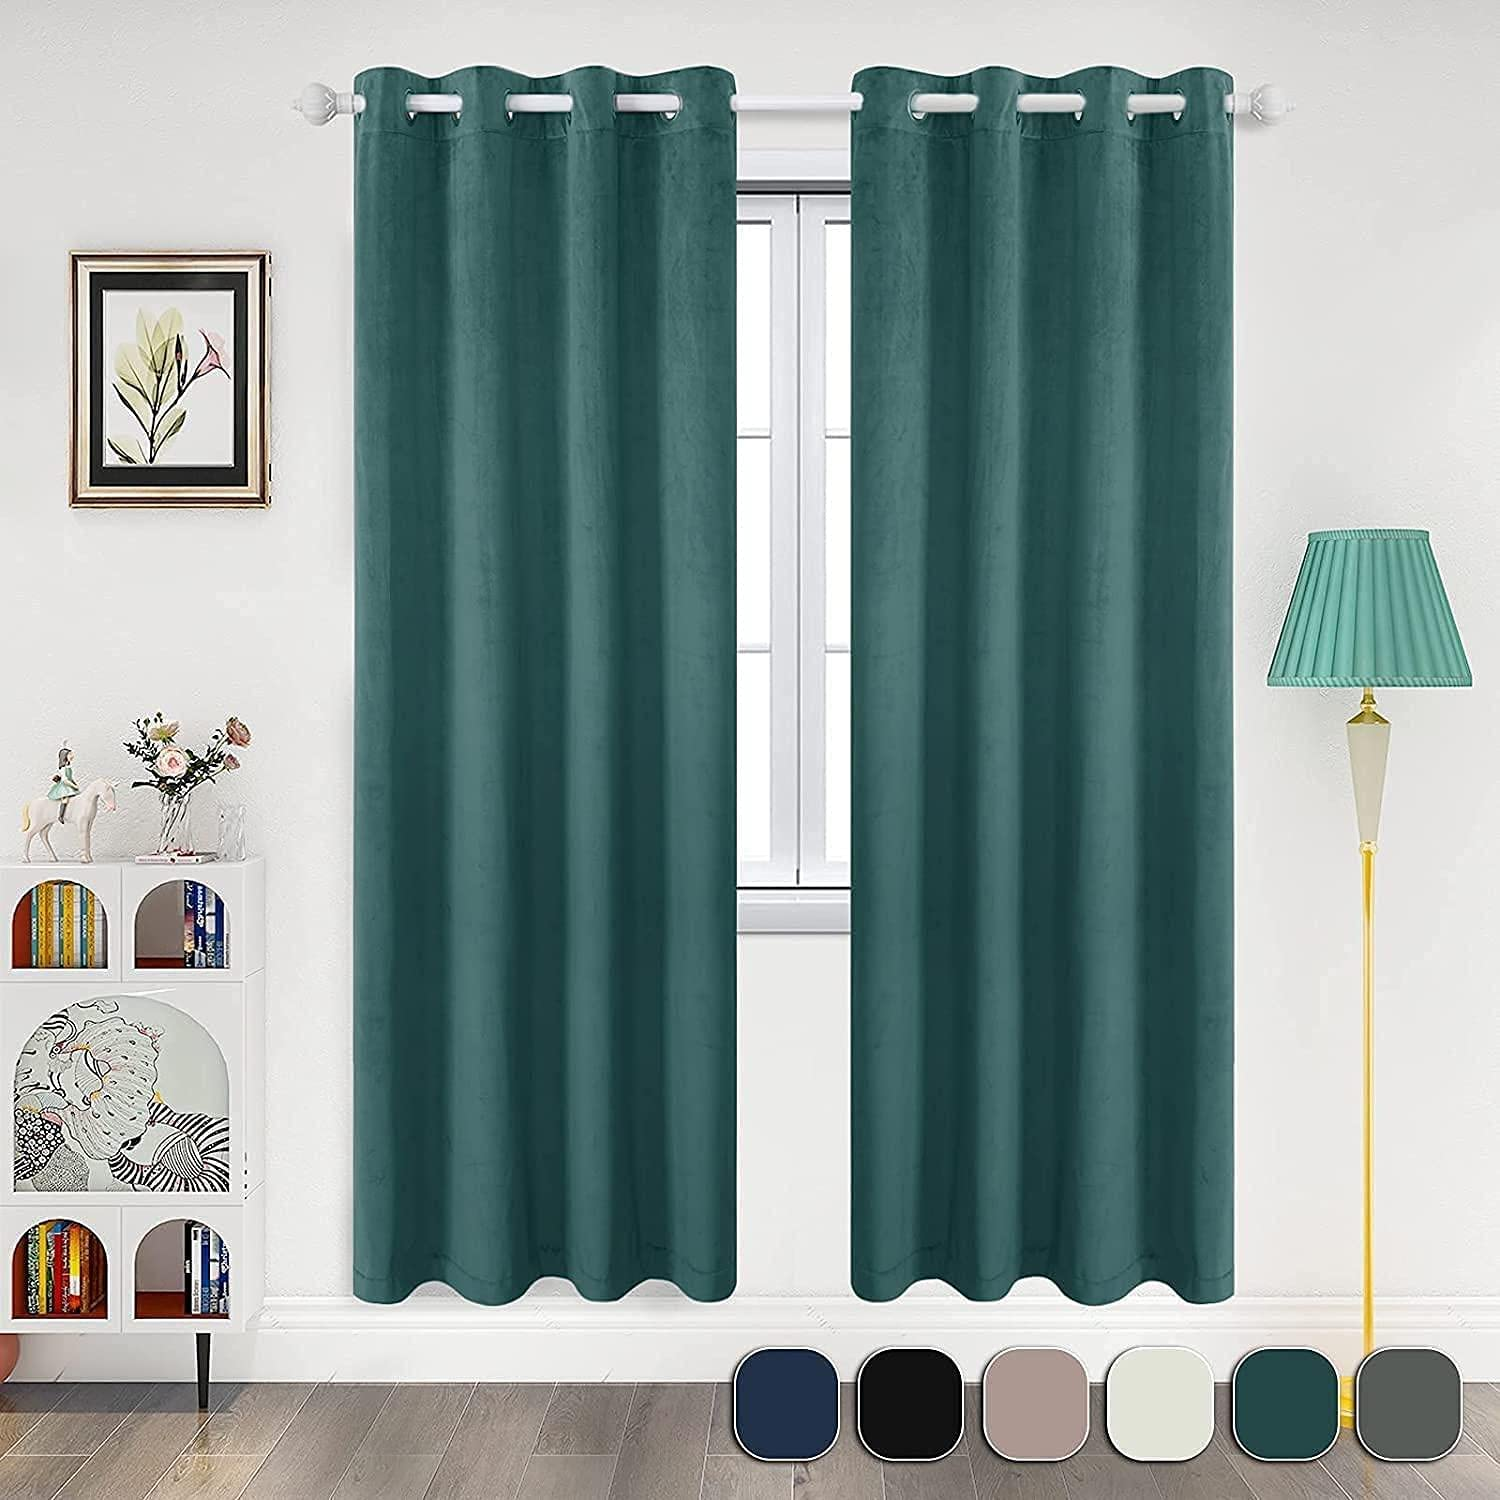 YXJD Blackout Max 49% OFF Velvet Curtains for and Living Room Max 82% OFF Bedroom Therma